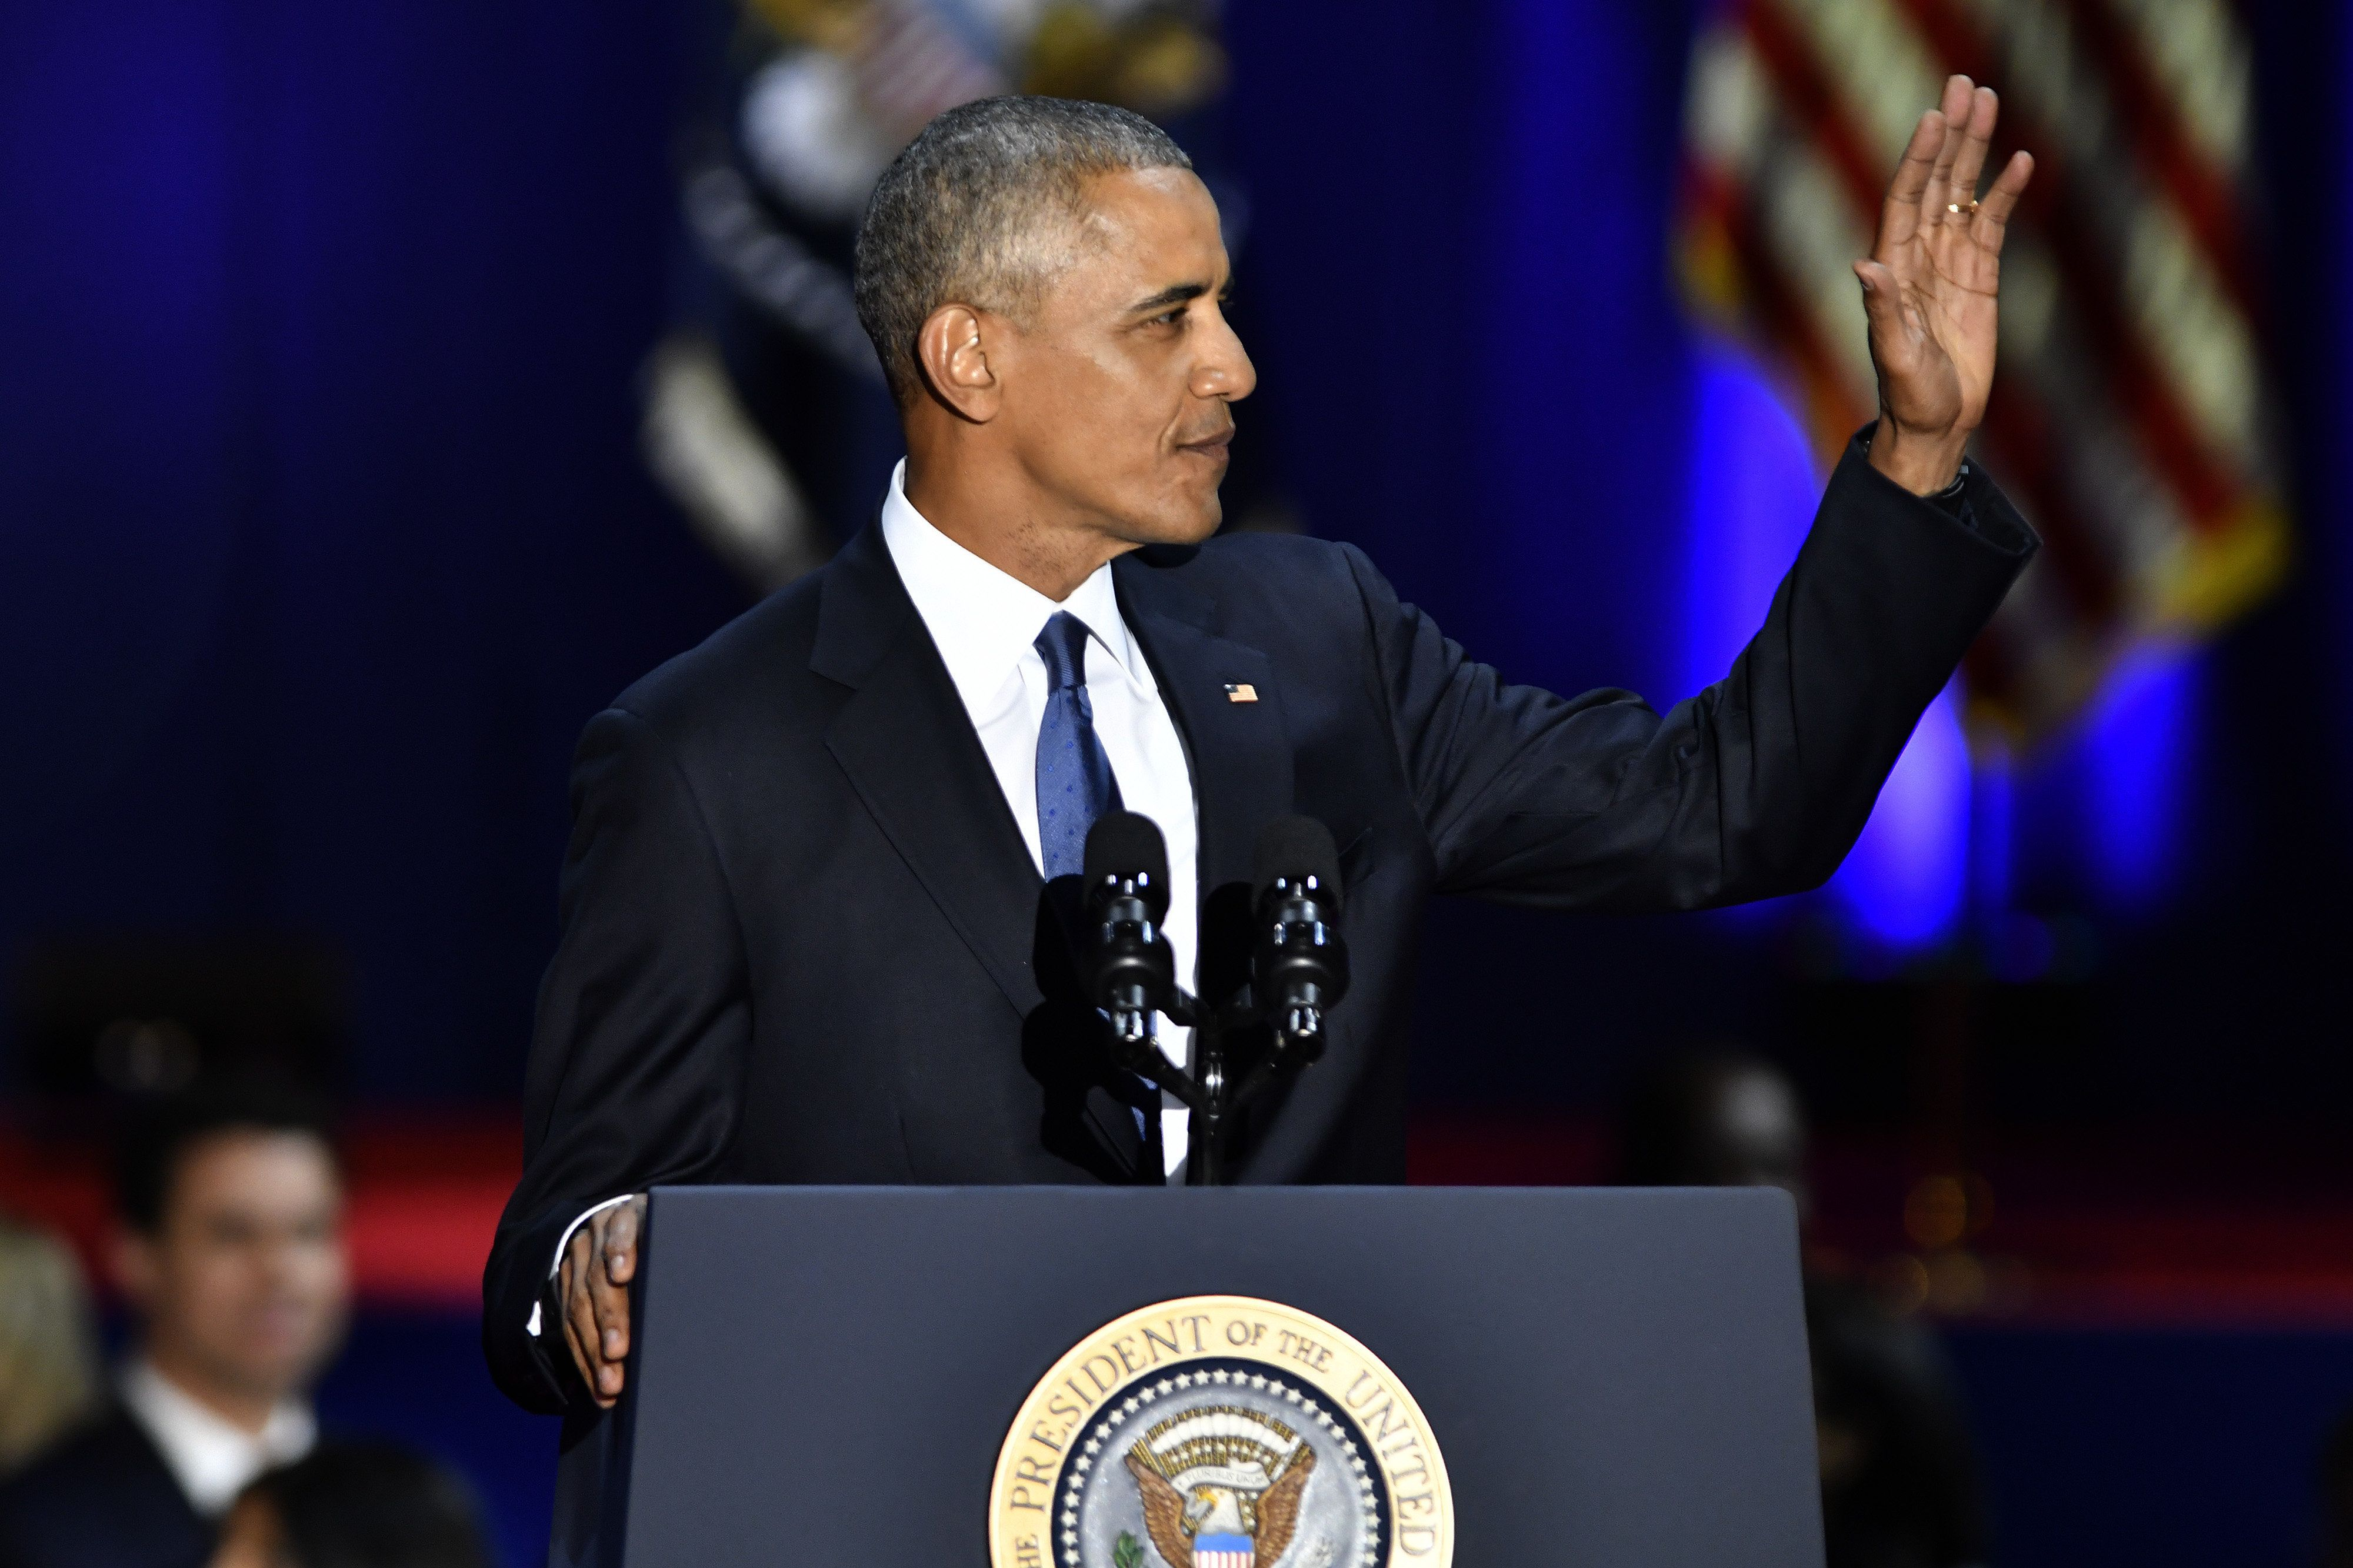 Barack Obama Pays Tribute To Joe Biden: 'I Gained A Brother' By Picking Him As